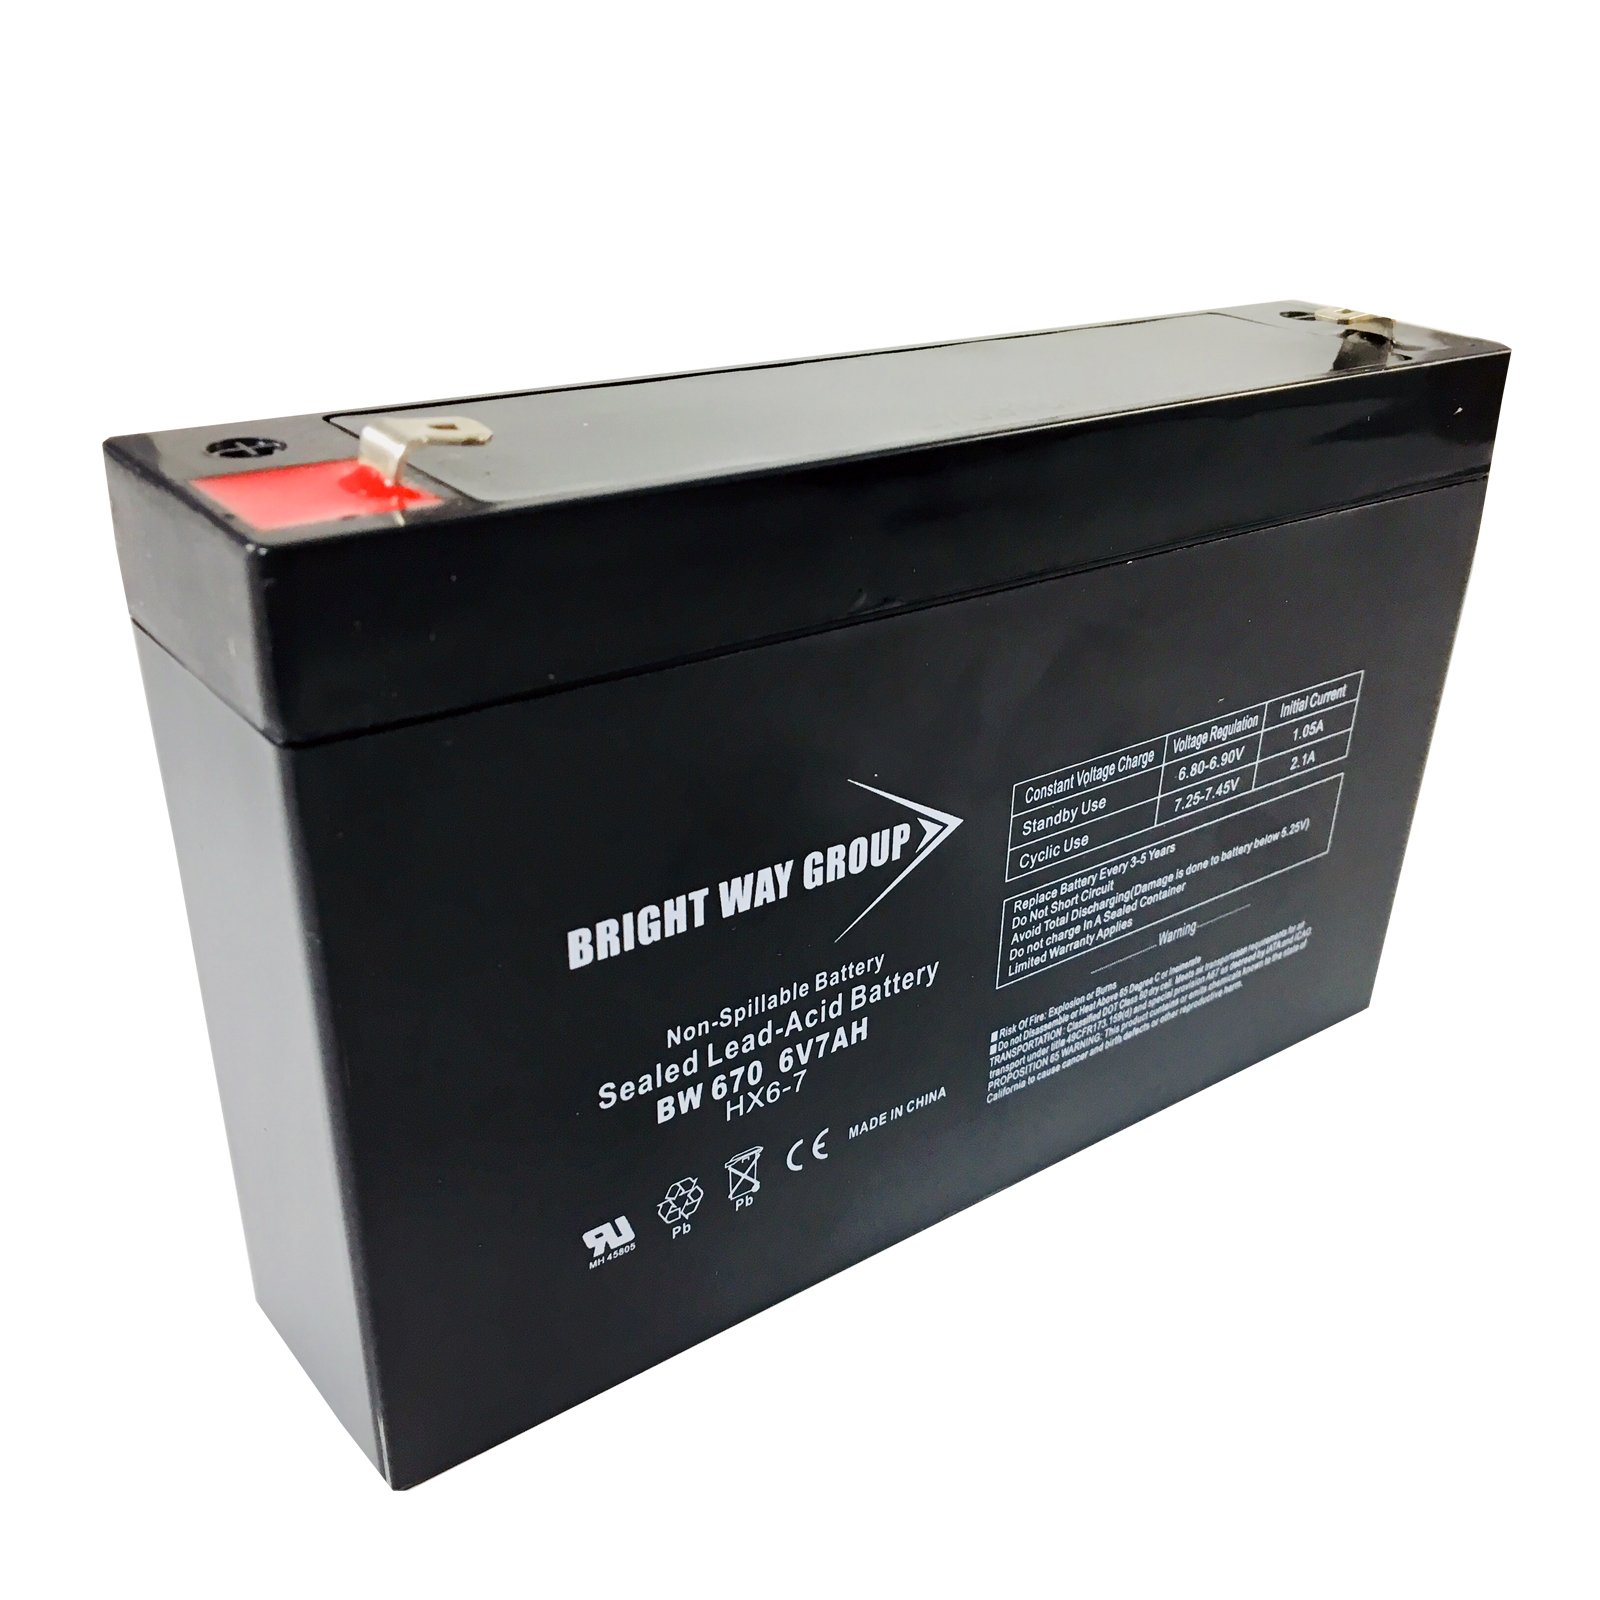 Best Ride On Cars 6 Volt 7Ah Battery Replacement for Kids Ride On Vehicles